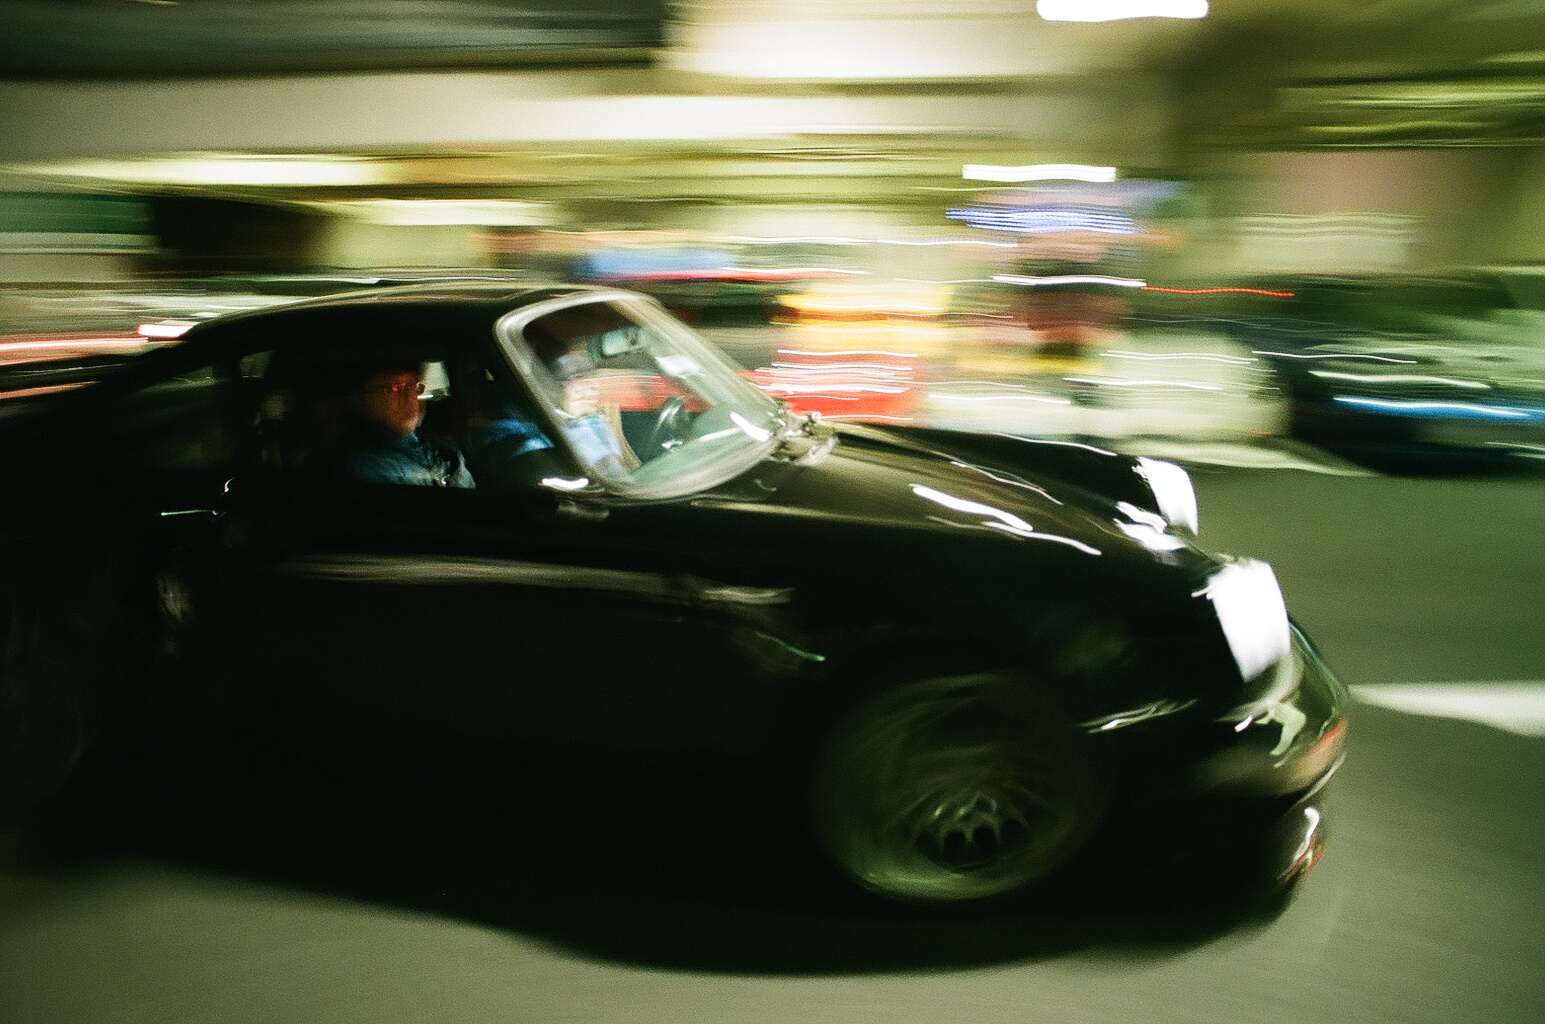 Love this panning action with distorted lights.